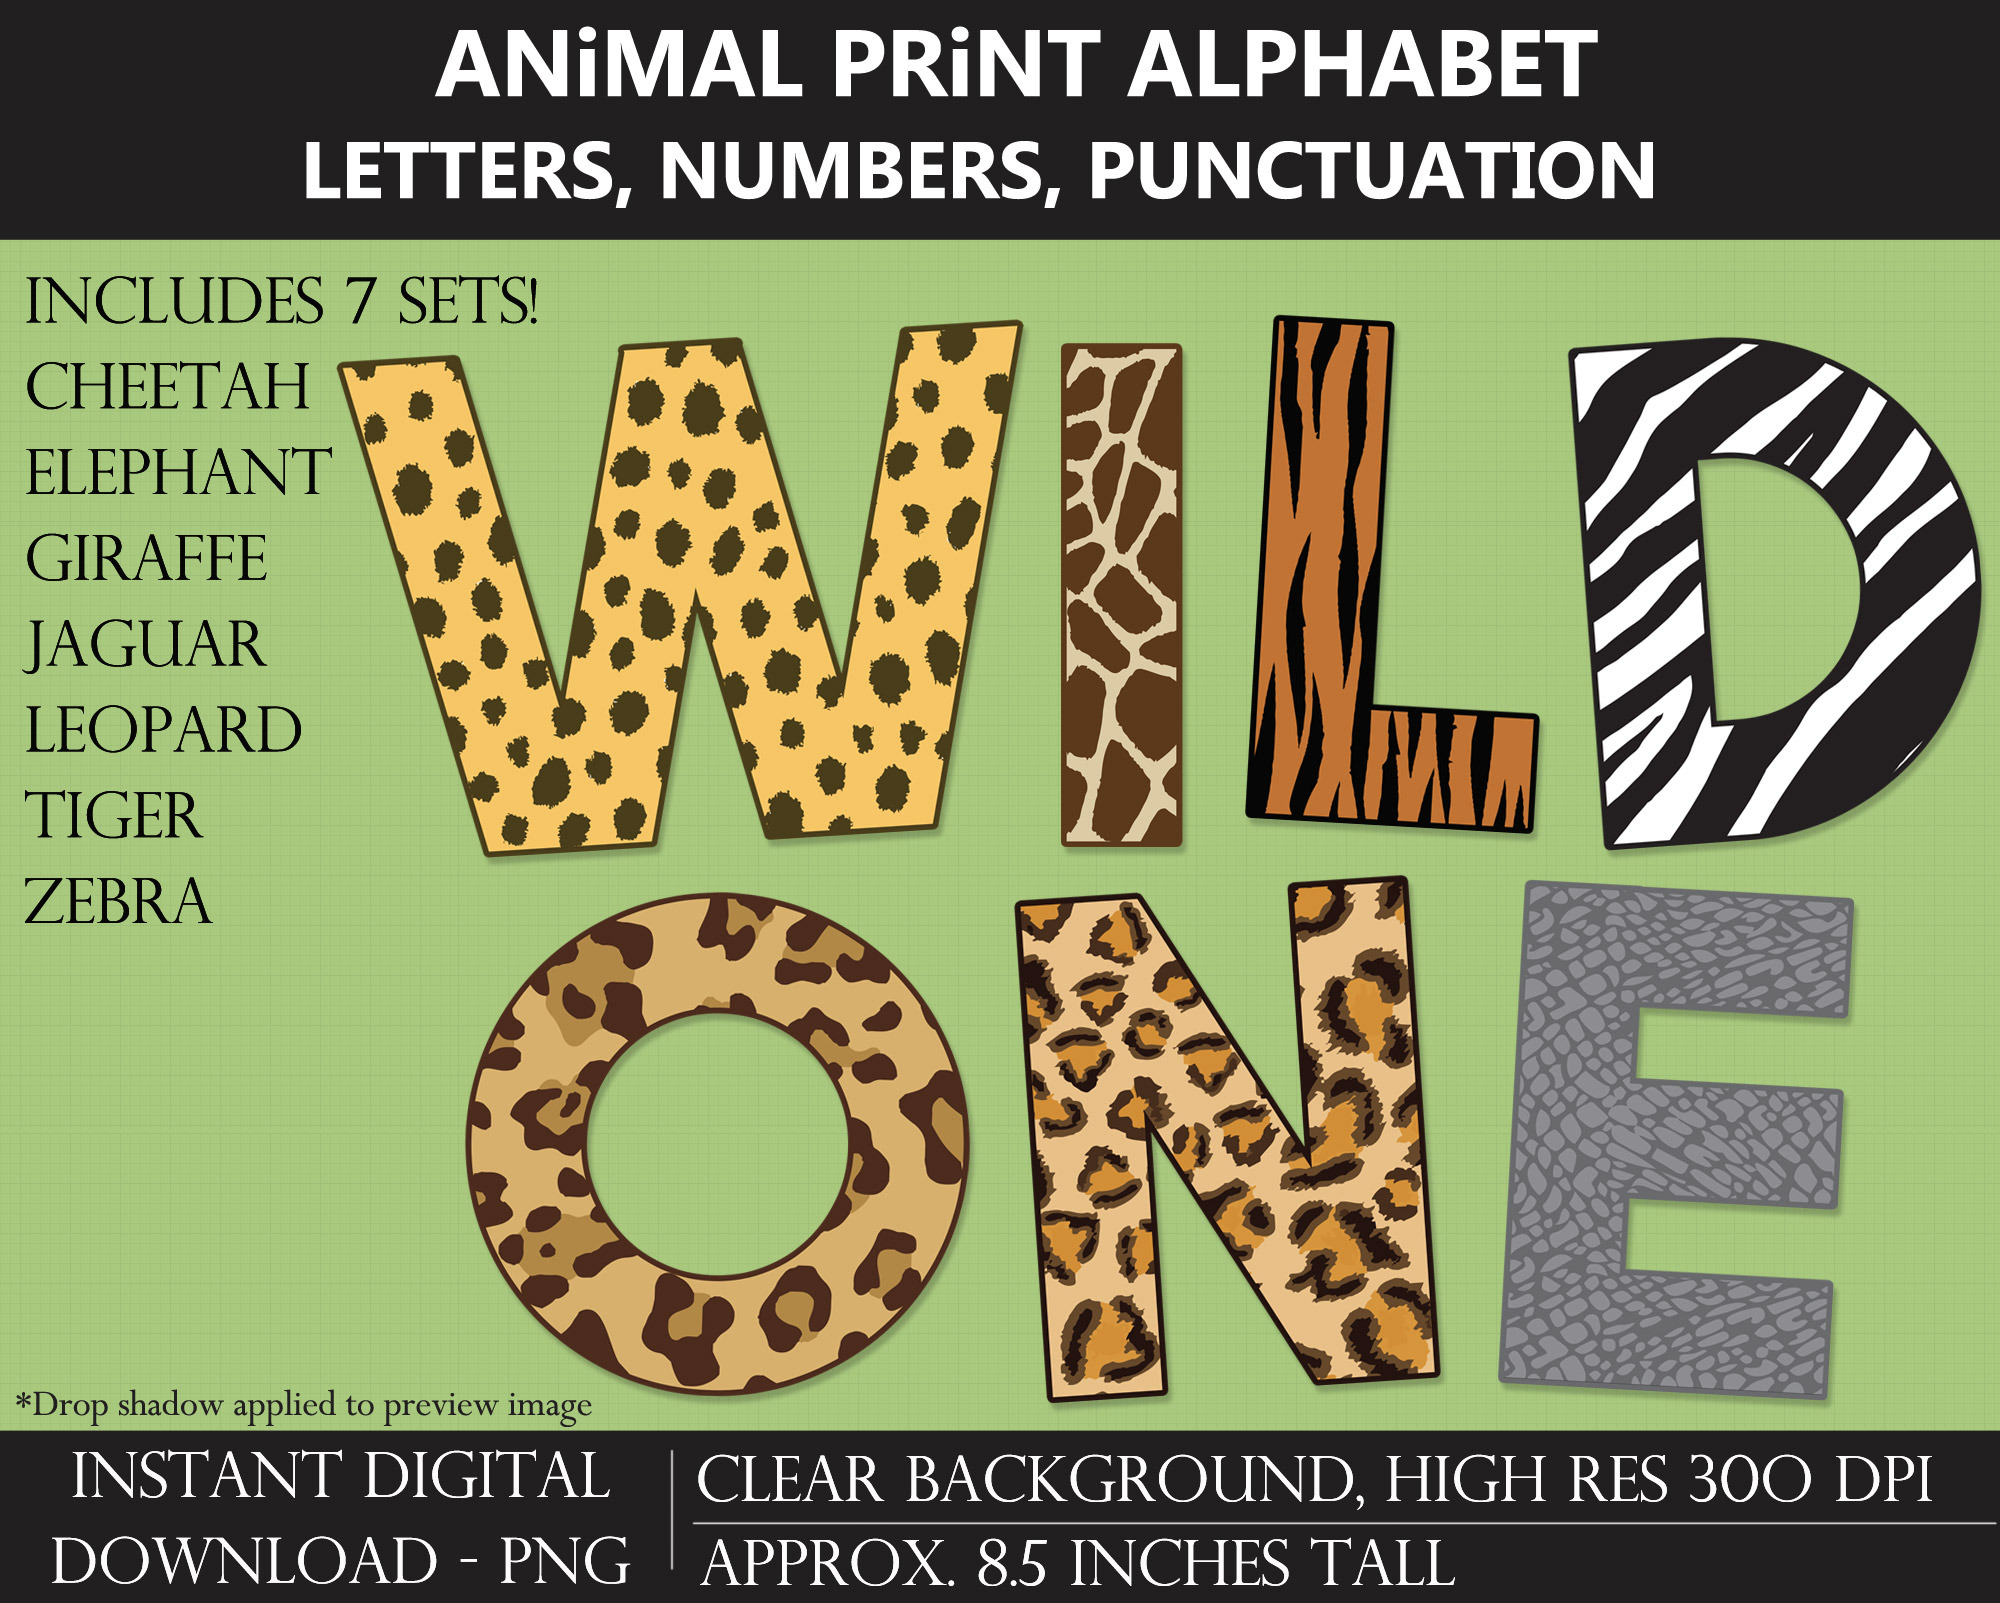 Animal Print Alphabet Clipart - Letters, Numbers, Punctuation, Cheetah Print, Tiger Print, Zebra